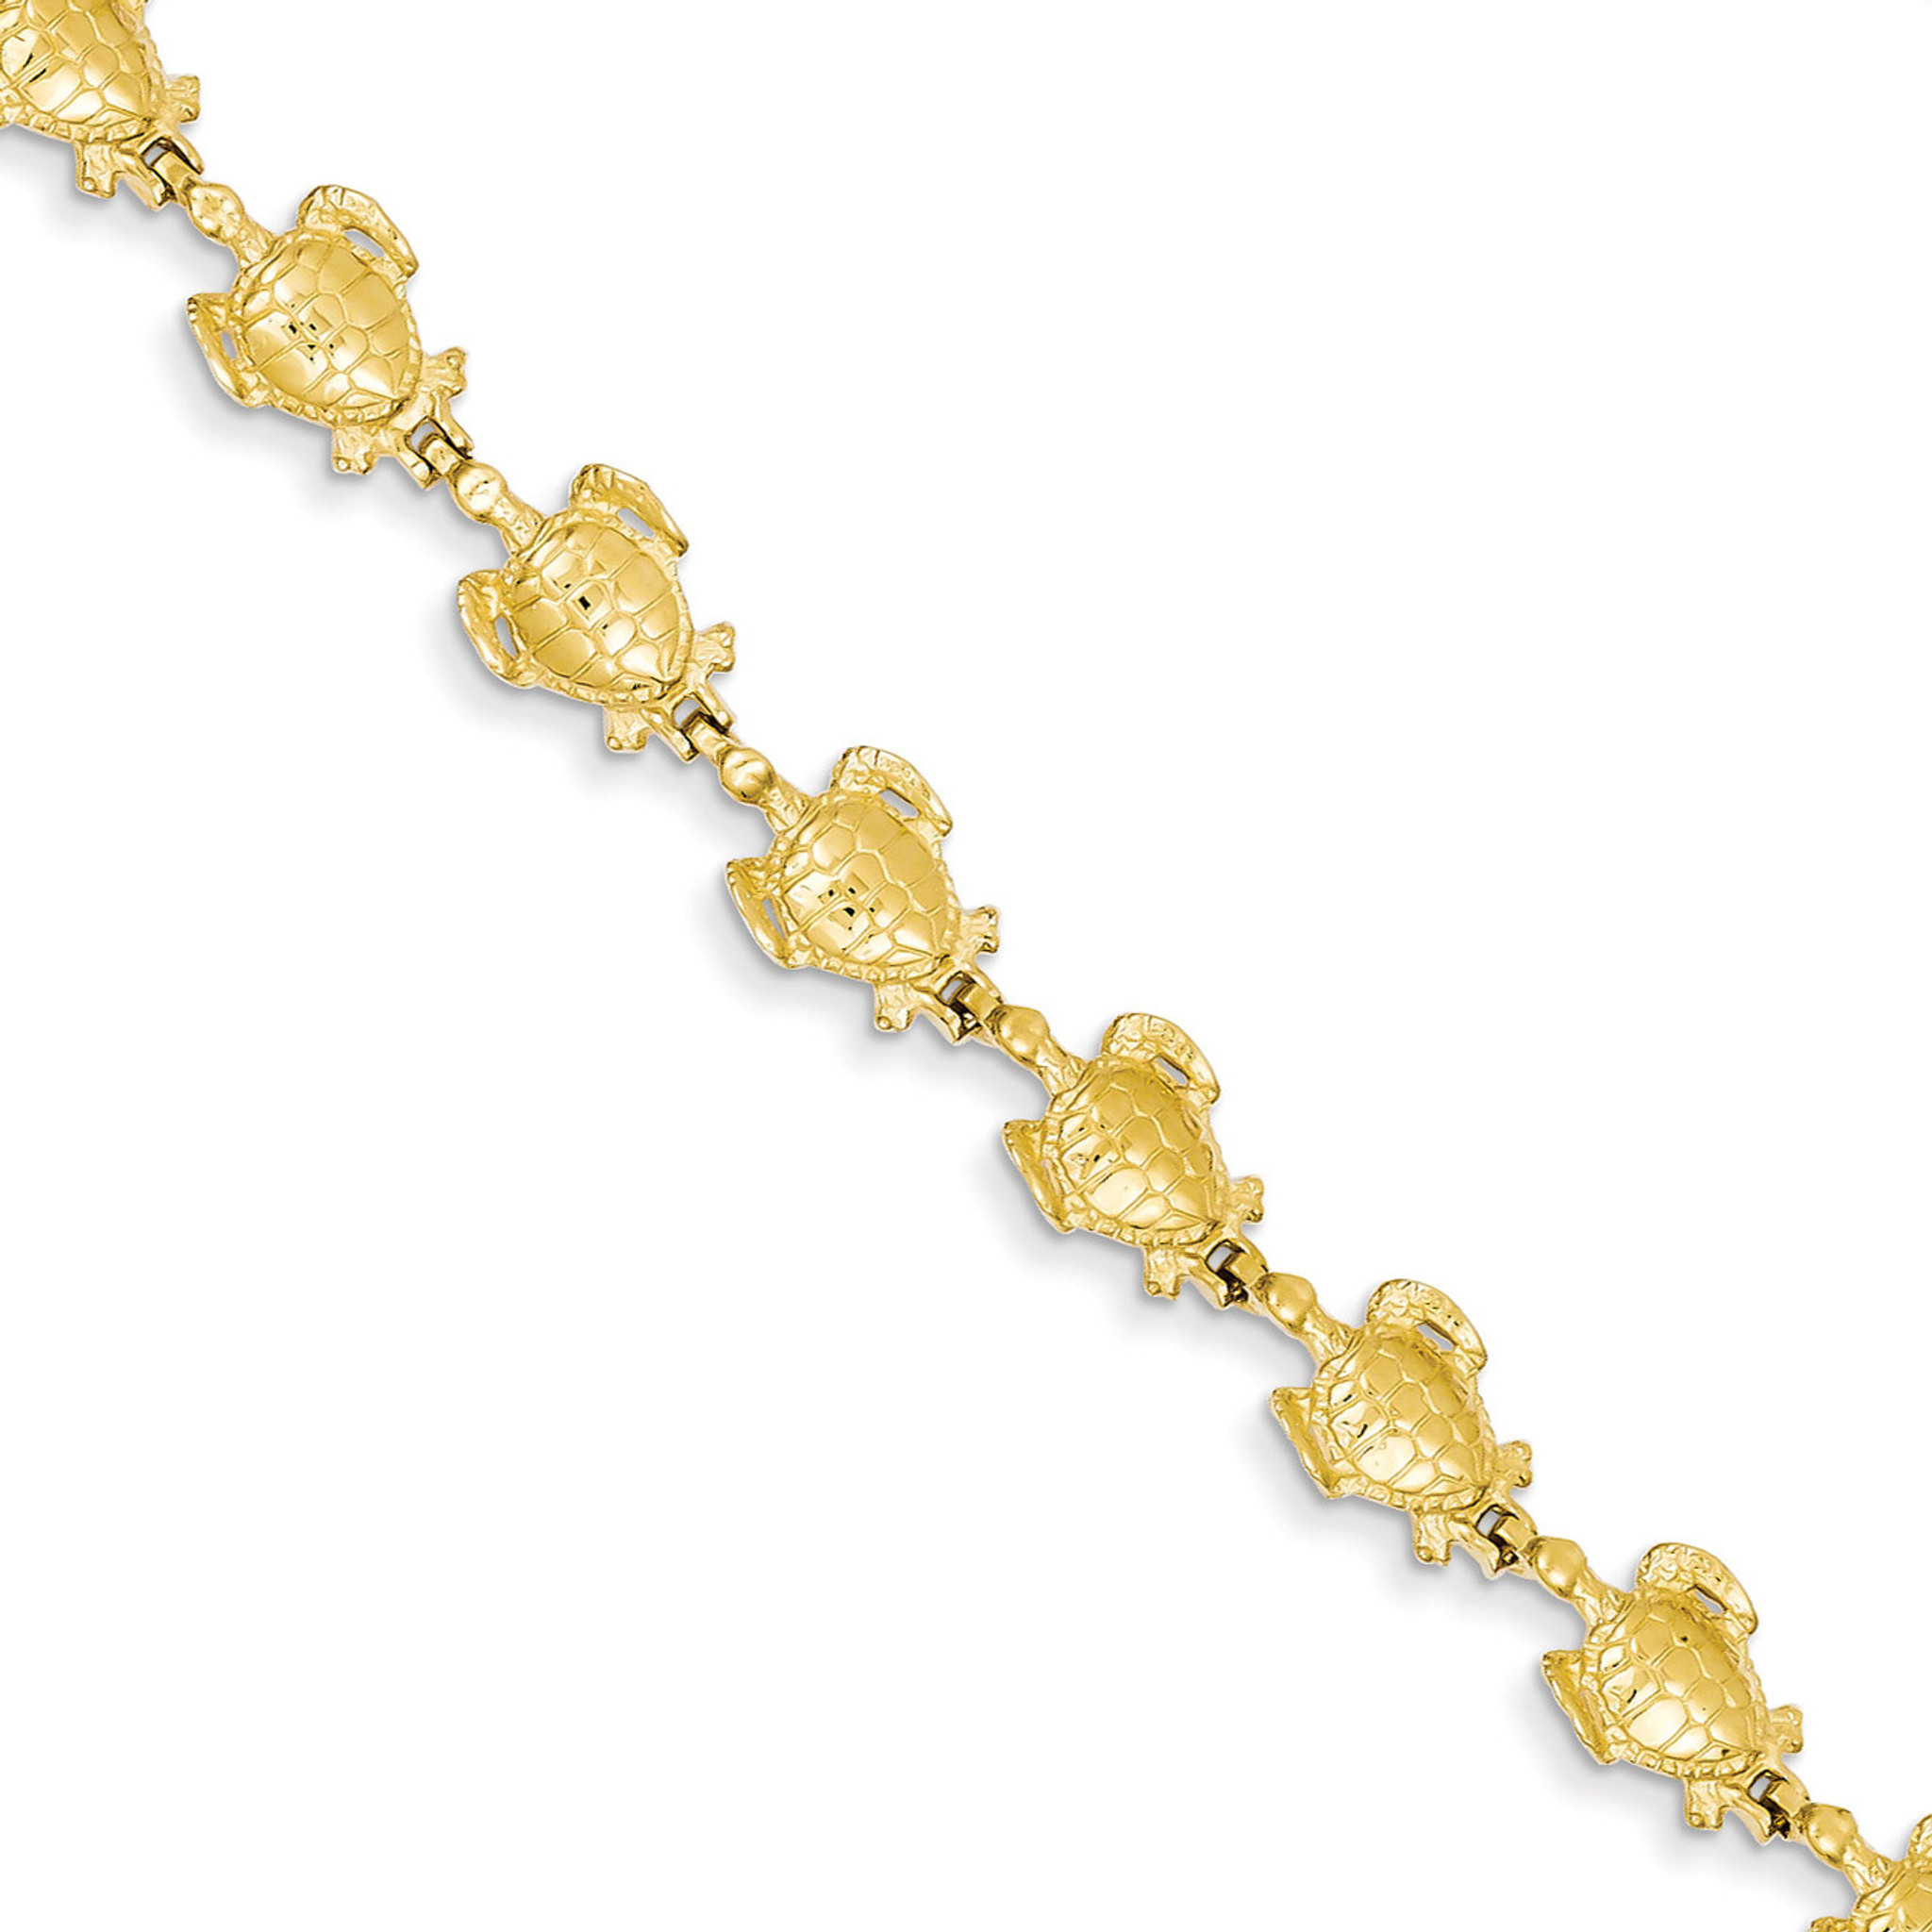 14K Yellow Gold 7in Polished /& Textured Turtle Bracelet